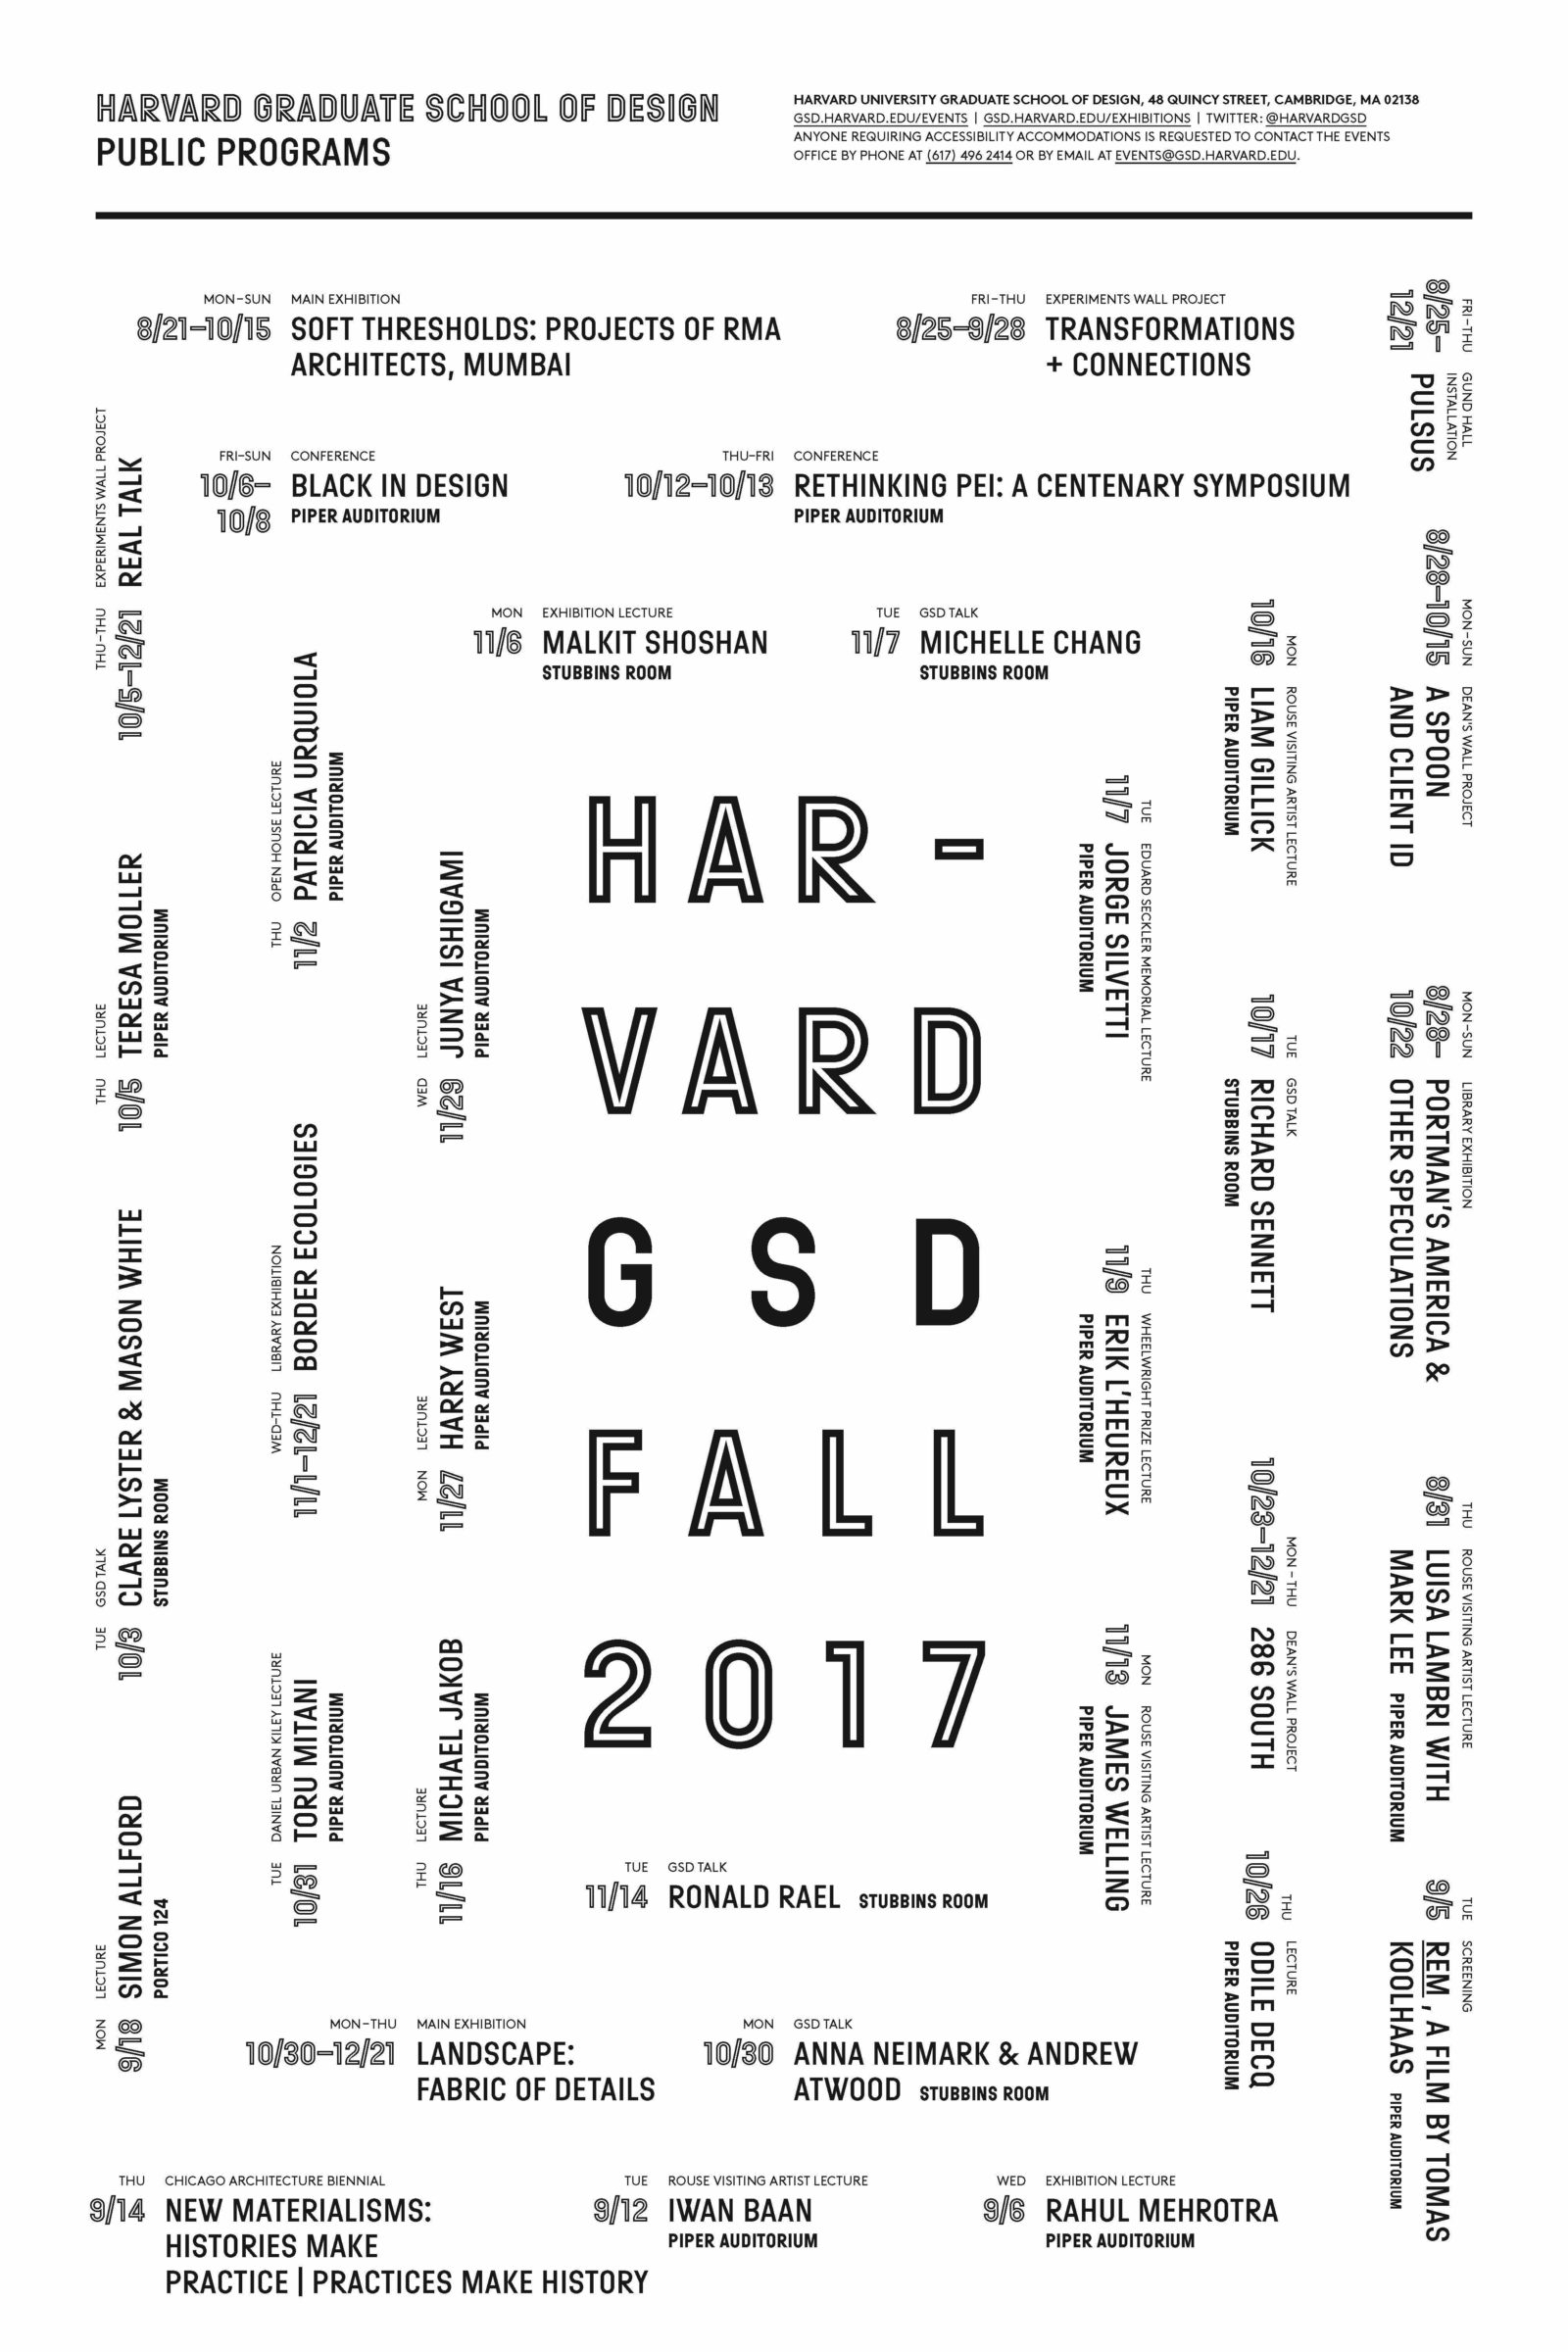 Announcing The Gsd's Fall 2017 Public Lecture Series - Harvard